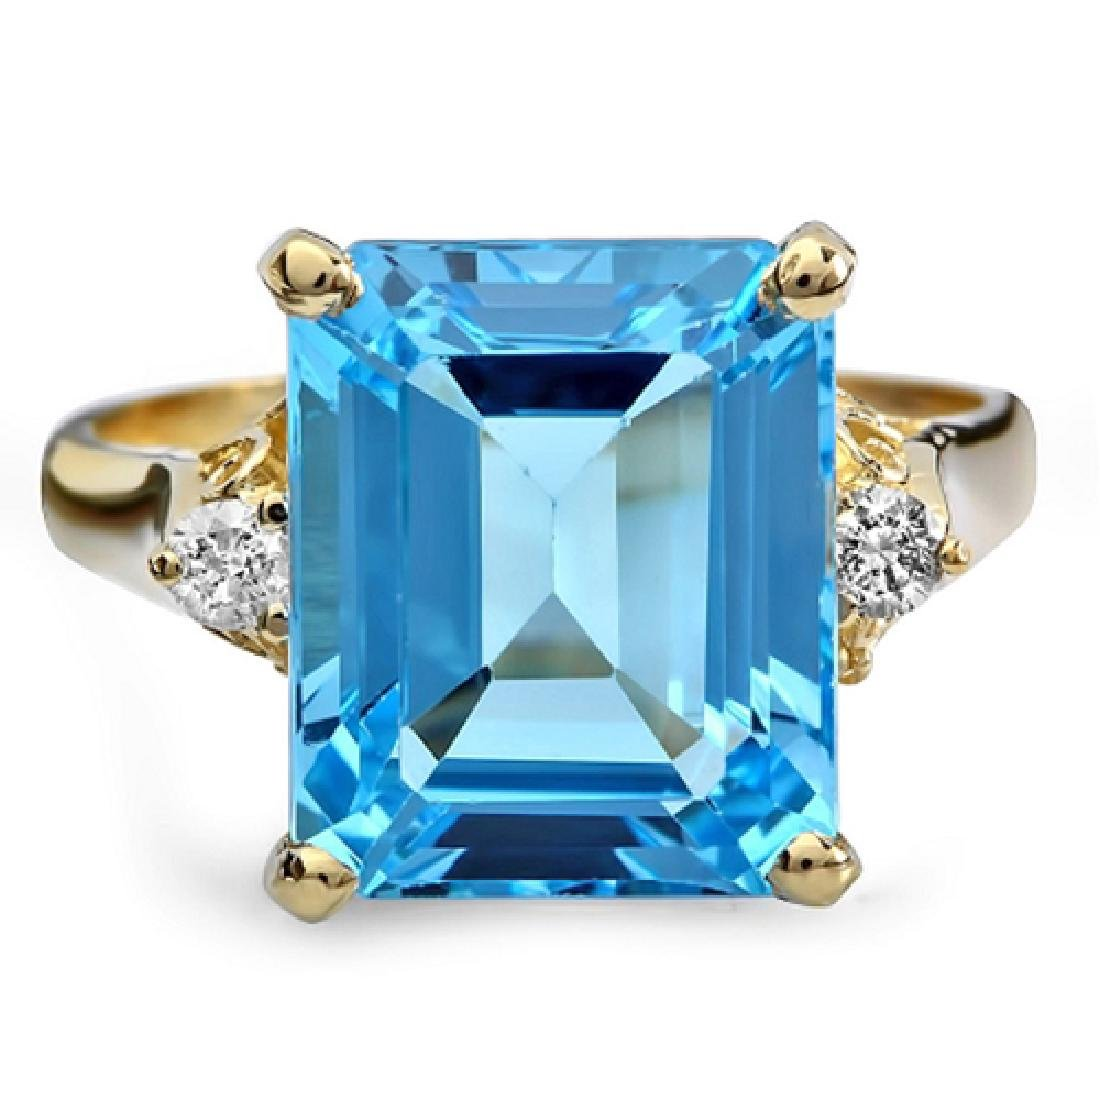 8.00 Carat Natural Topaz 18K Solid Yellow Gold Diamond